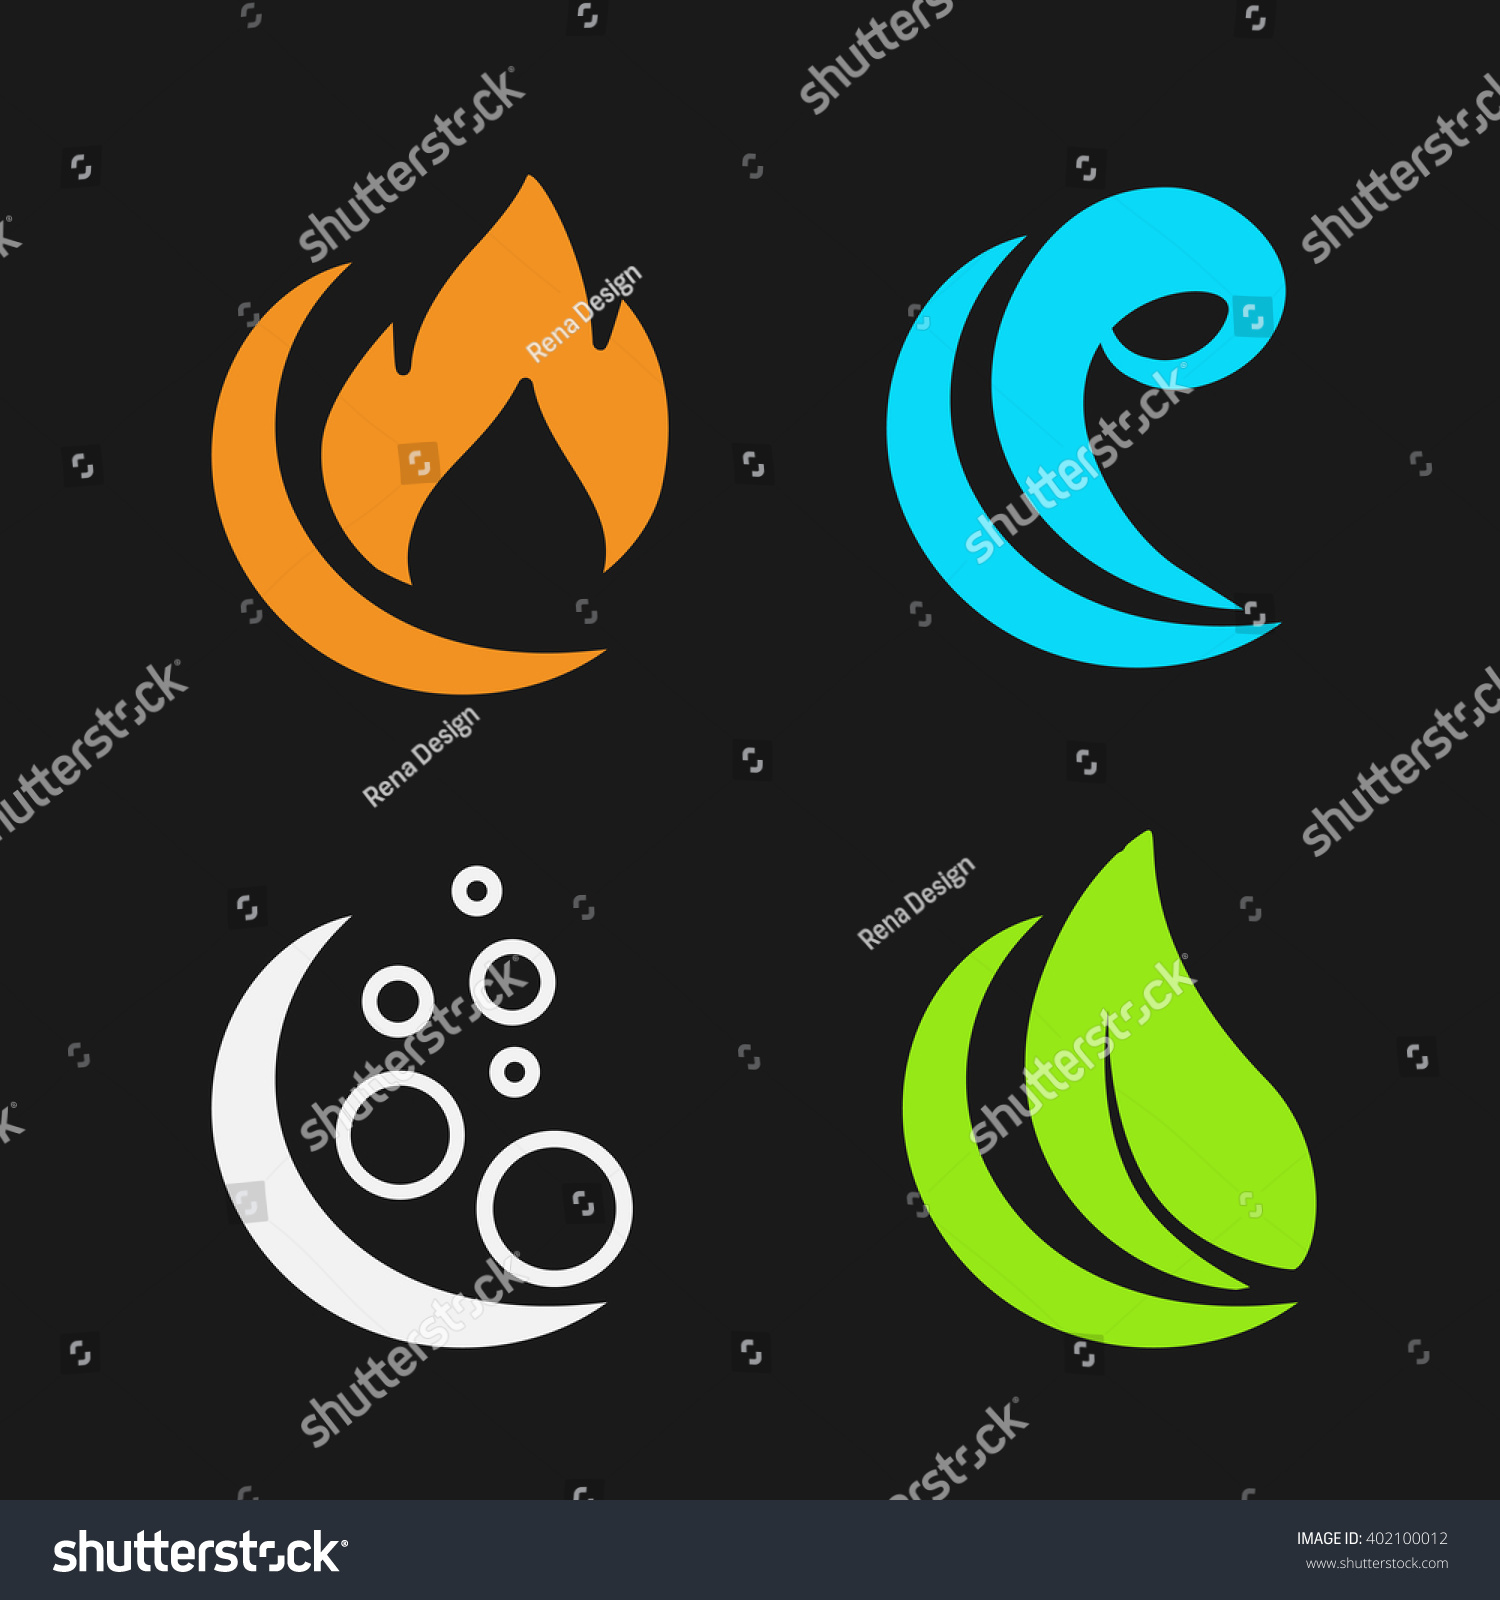 Vector four natural elements - fire, air, water, earth - nature symbols with